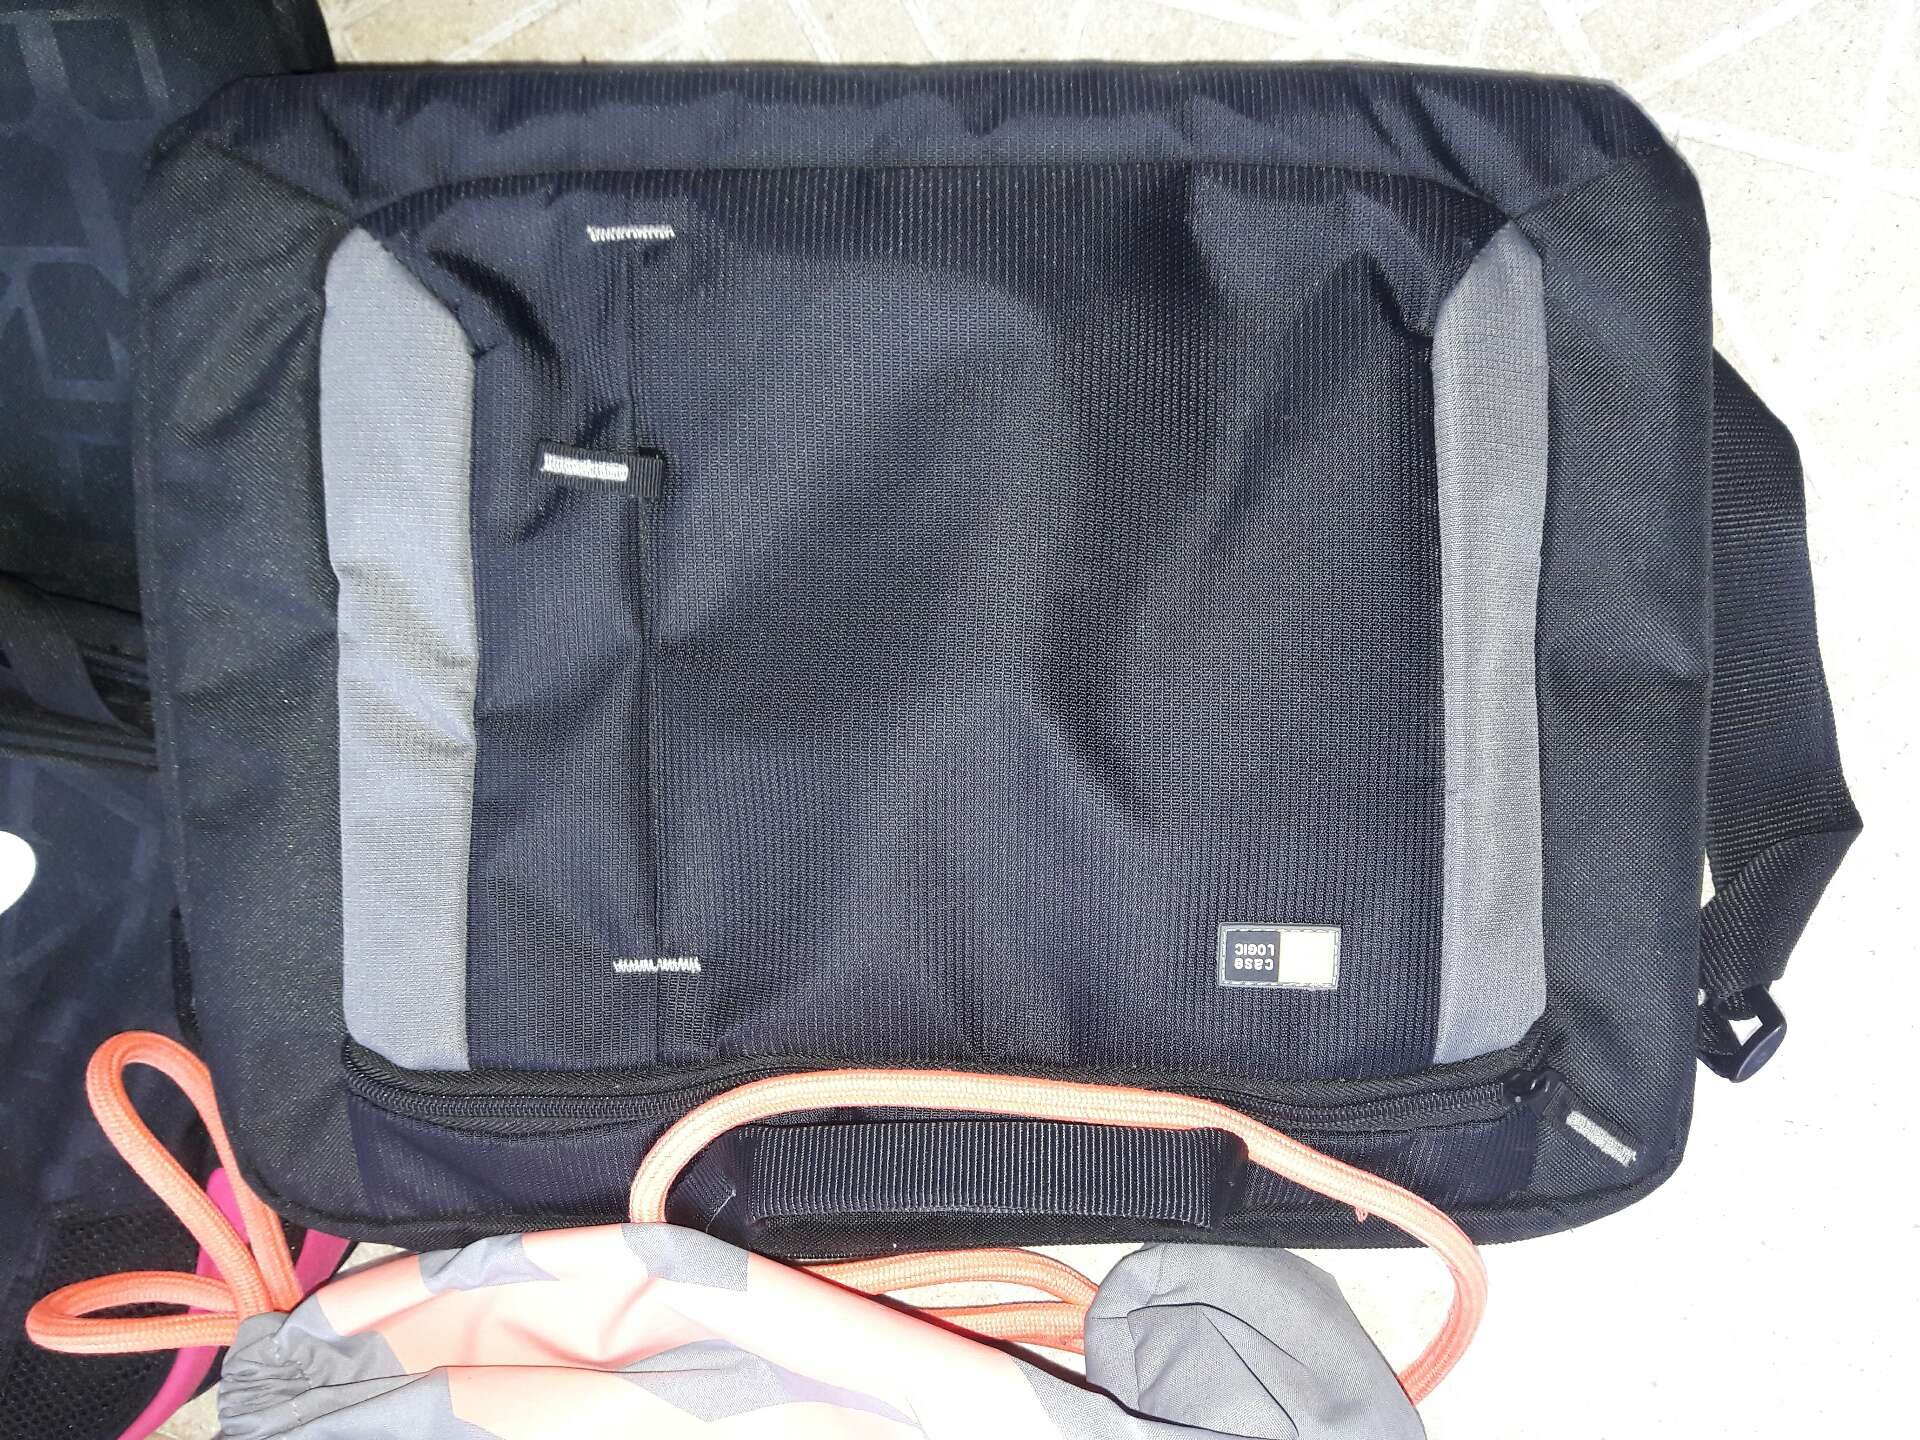 Nike hiking bag + Nike gym bag + laptop bag moving sale for sale in ... 6ed1baa27a745